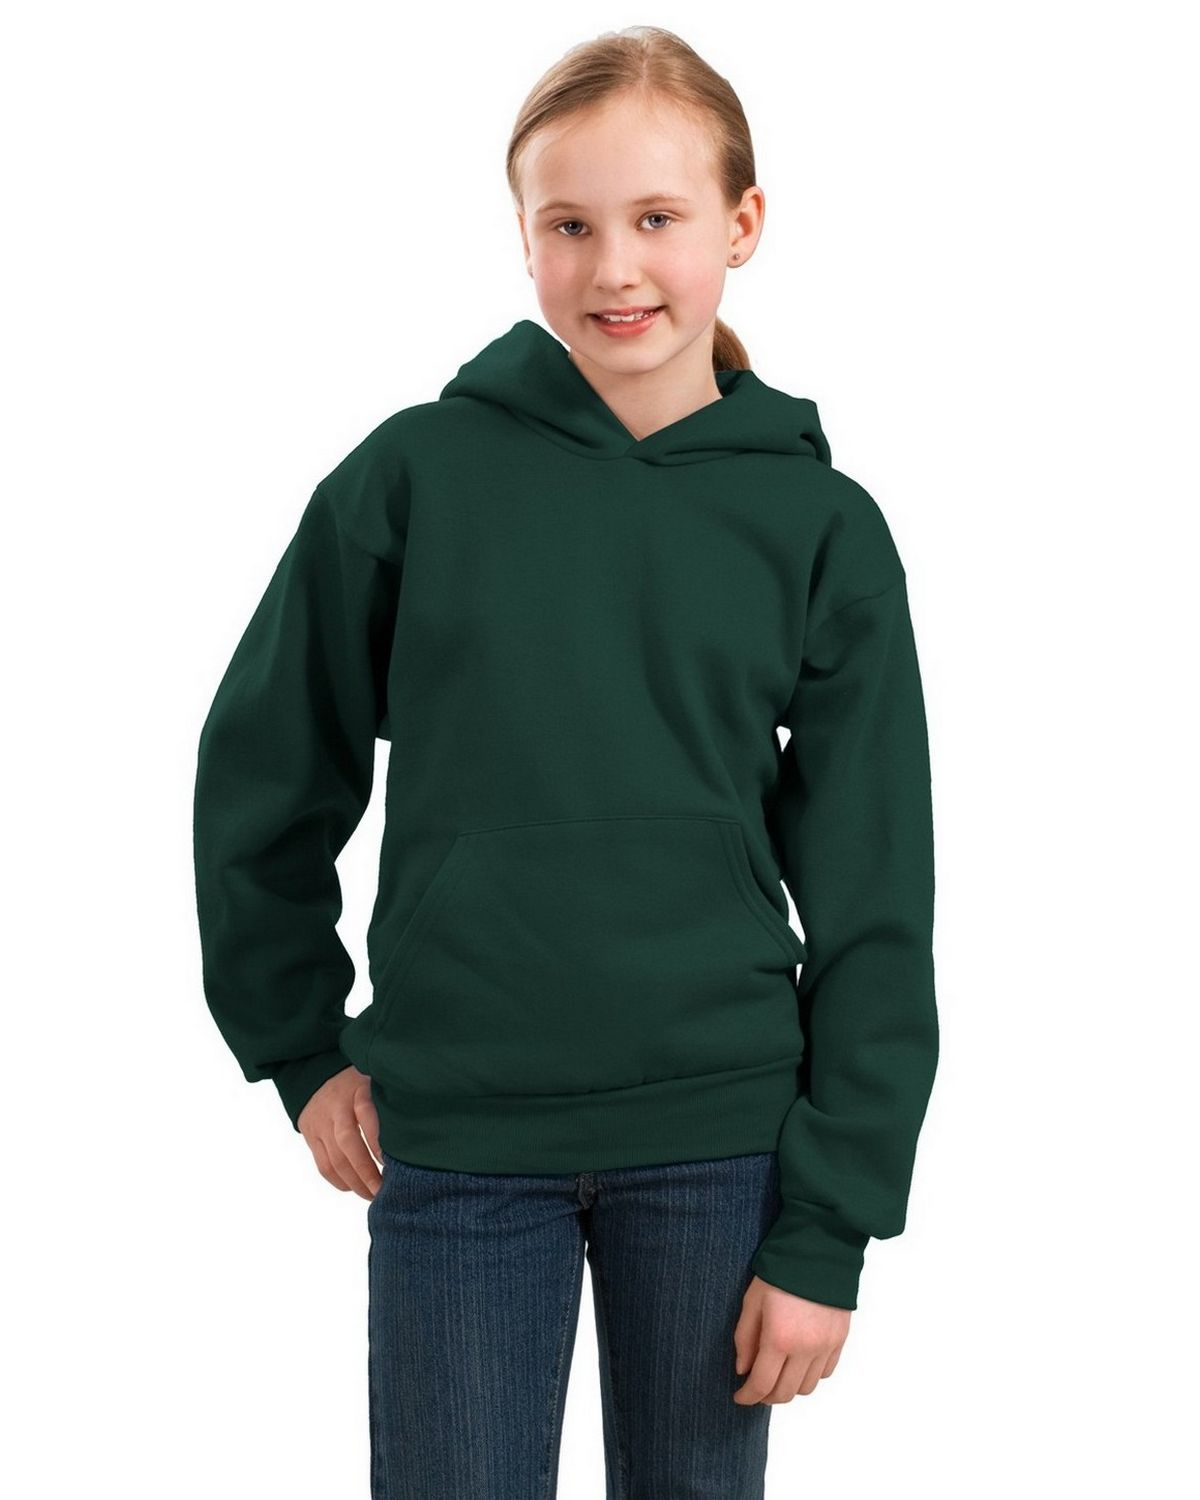 Port & Company PC90YH Youth Pullover Hooded Sweatshirt - Dark Green - XS PC90YH